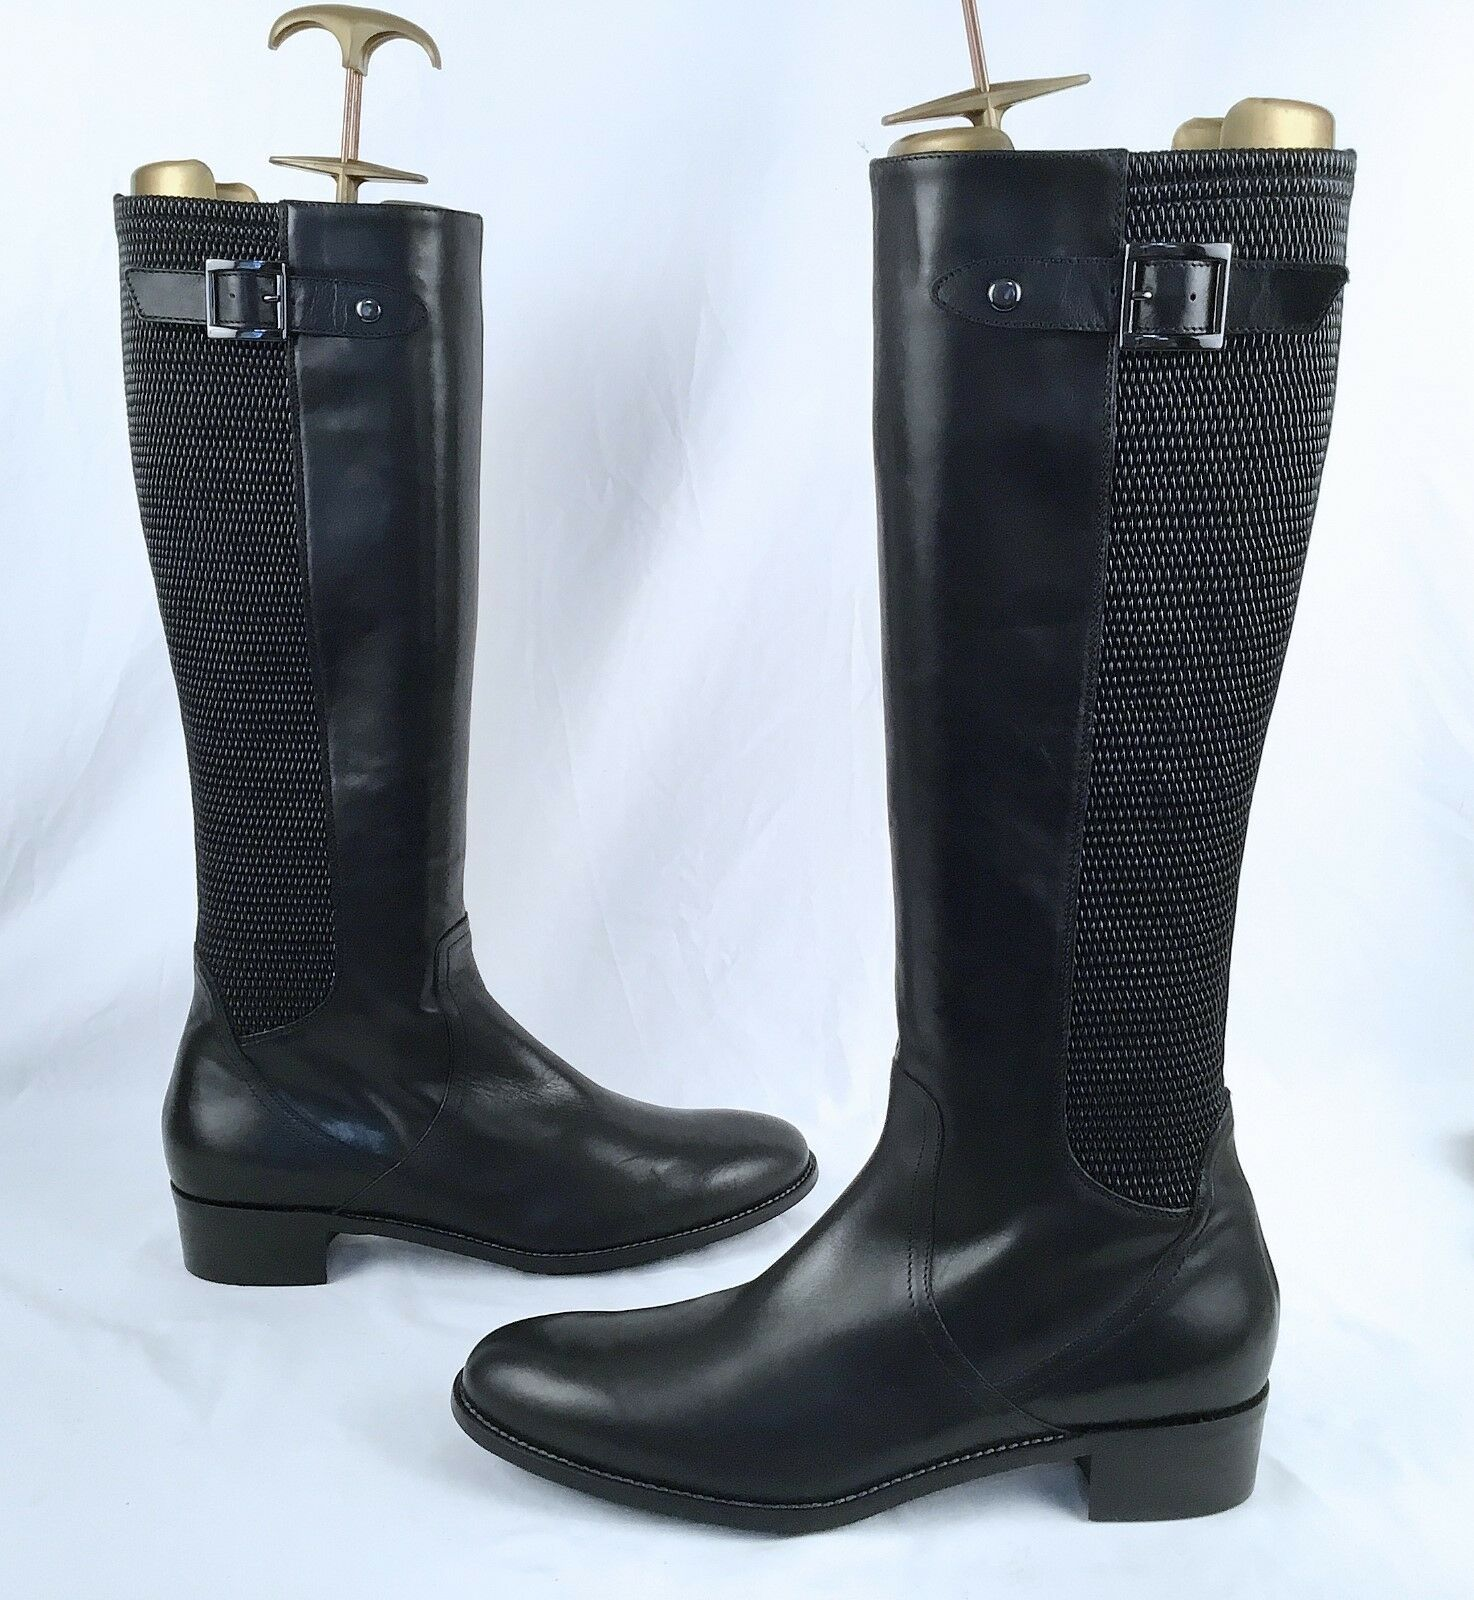 Aquatalia by Marvin K 'Uplift' Knee High Leather Boots- Size- 11 M  498 (J10)